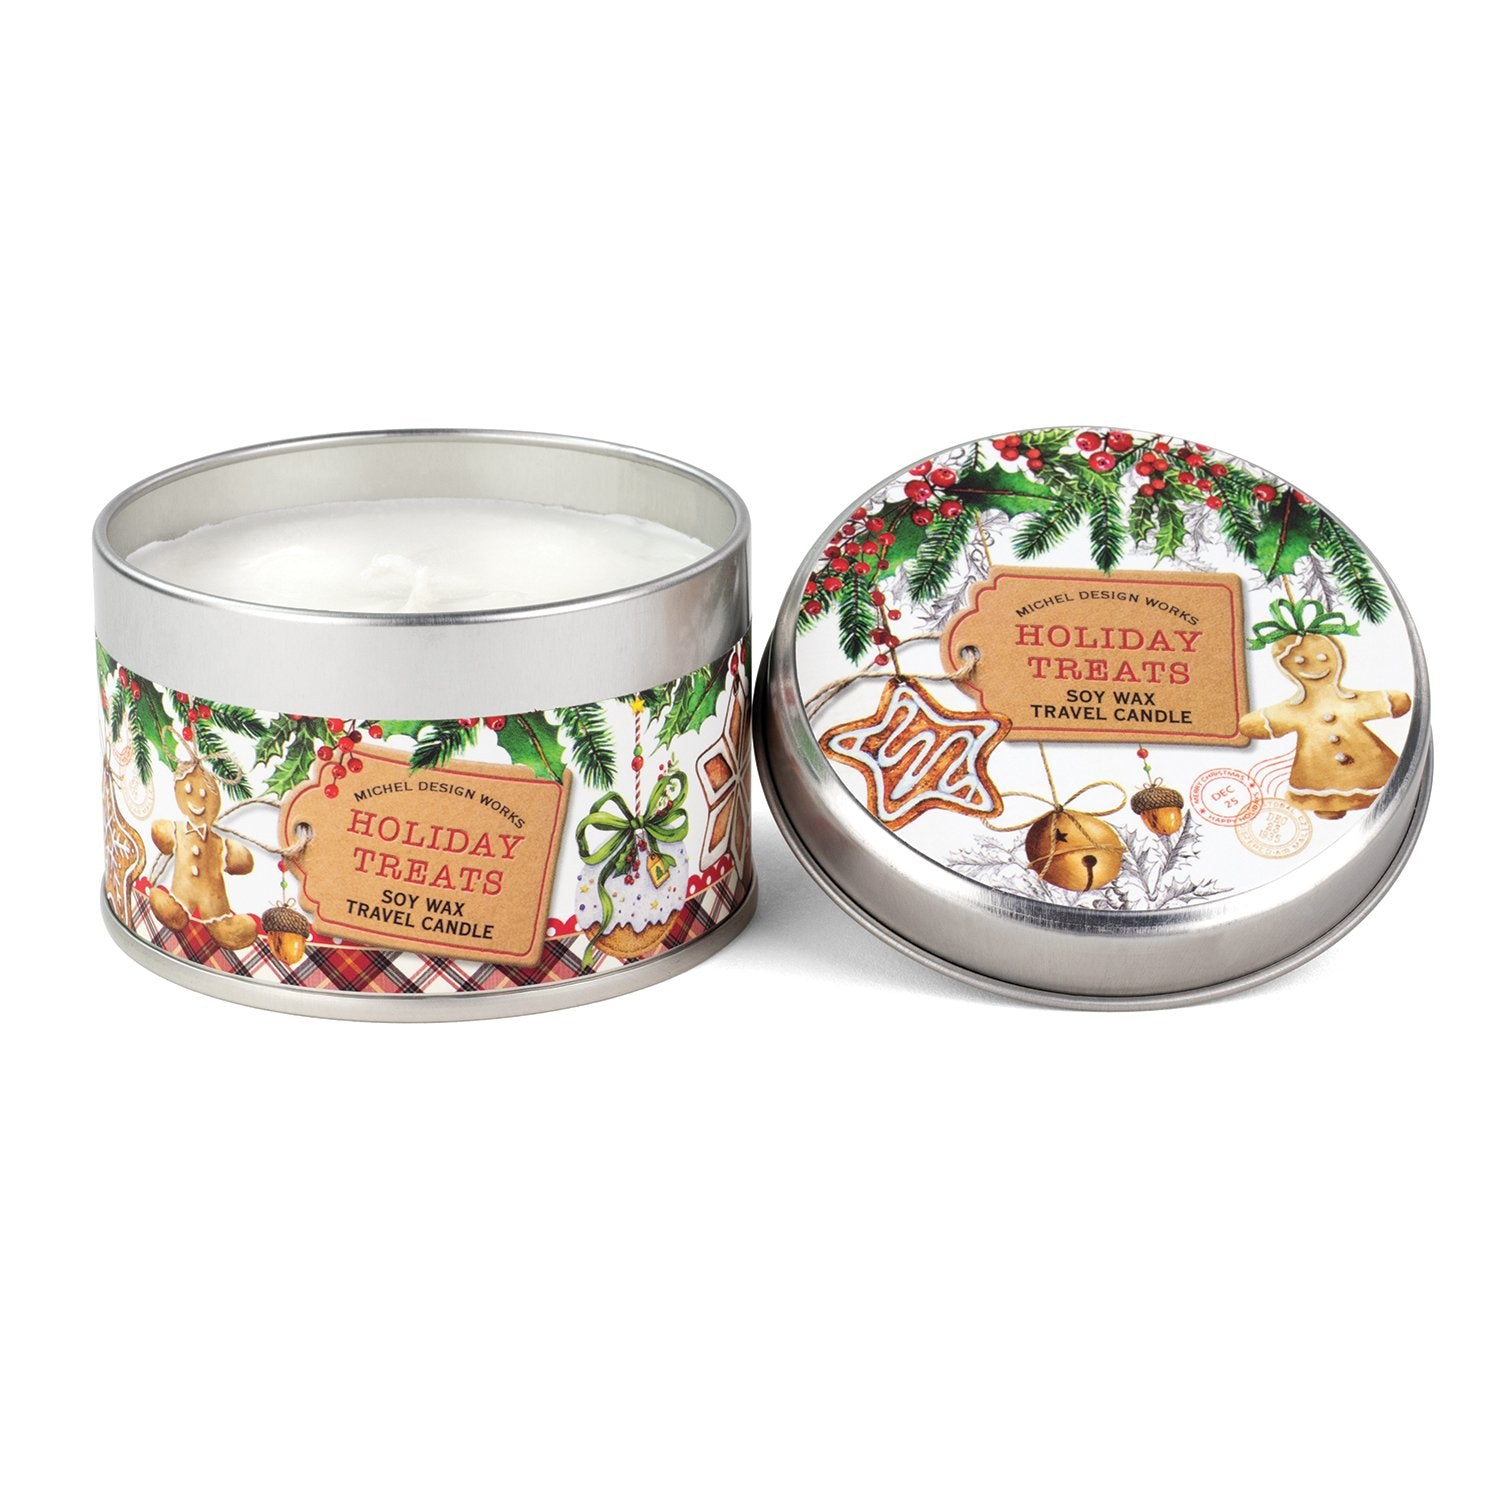 Holiday Treats Travel Candle